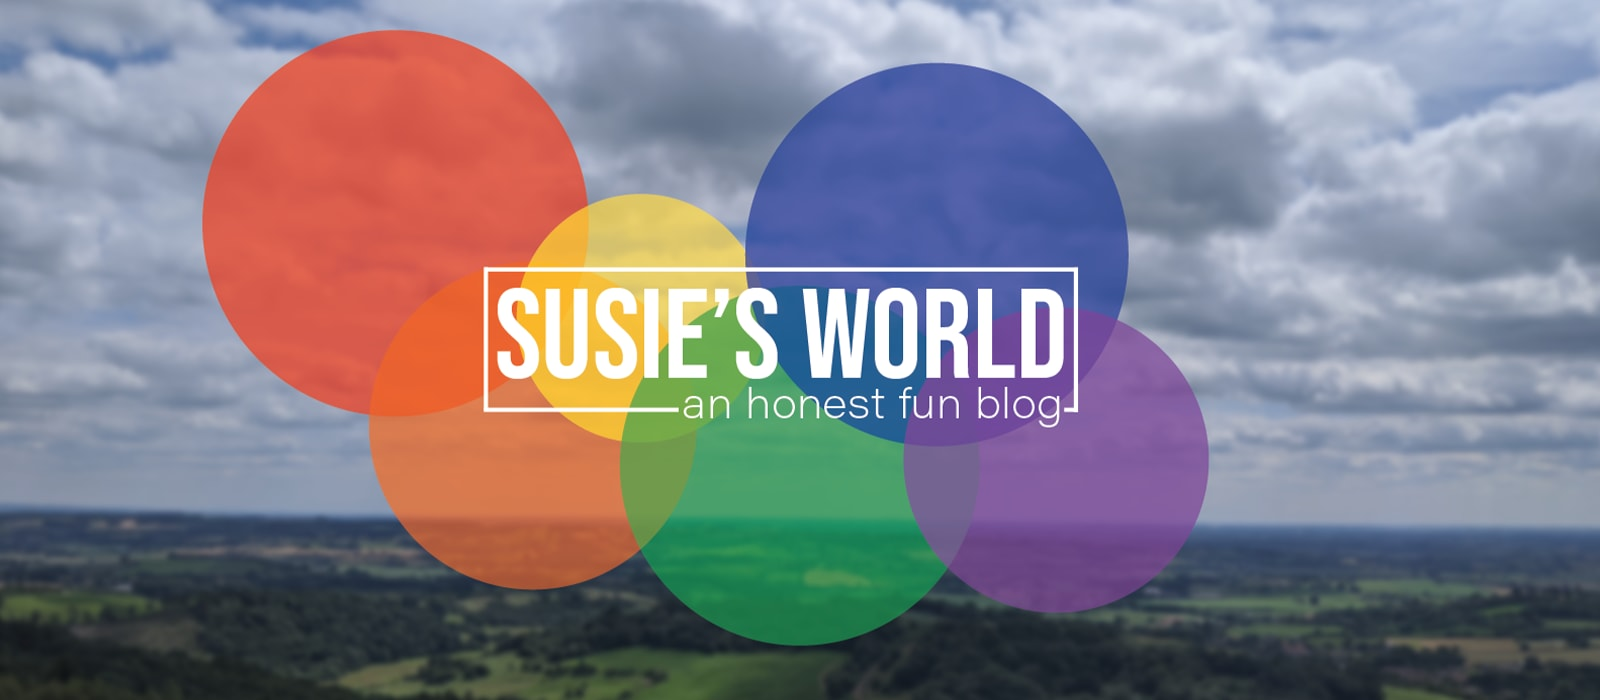 A new blog by one of our carers - Susie's World